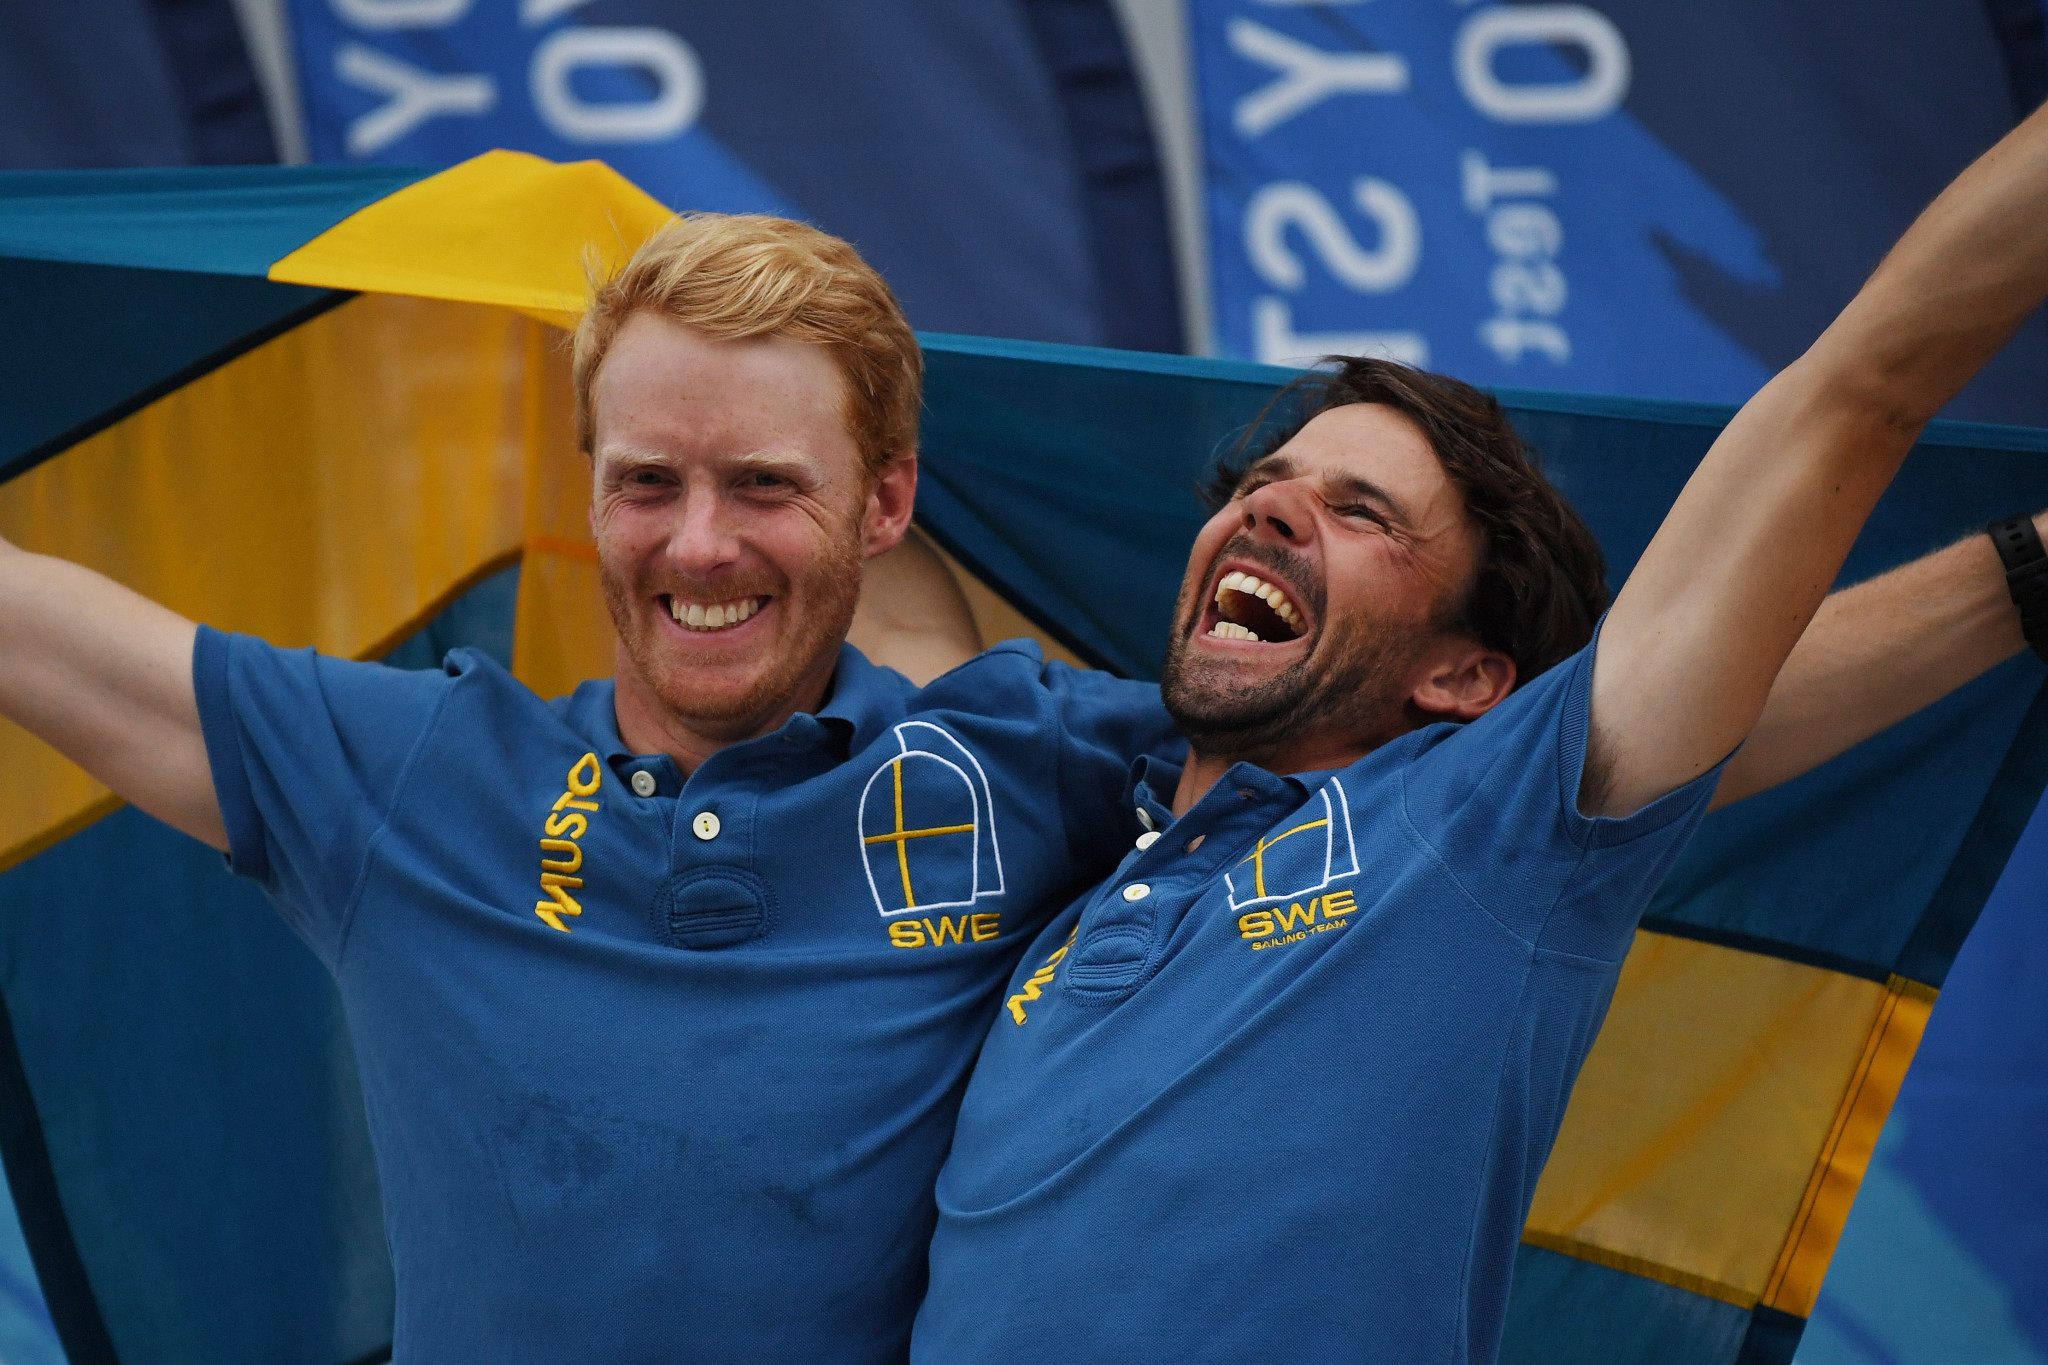 Sweden and Britain emerge as new leaders at 470 World Championship